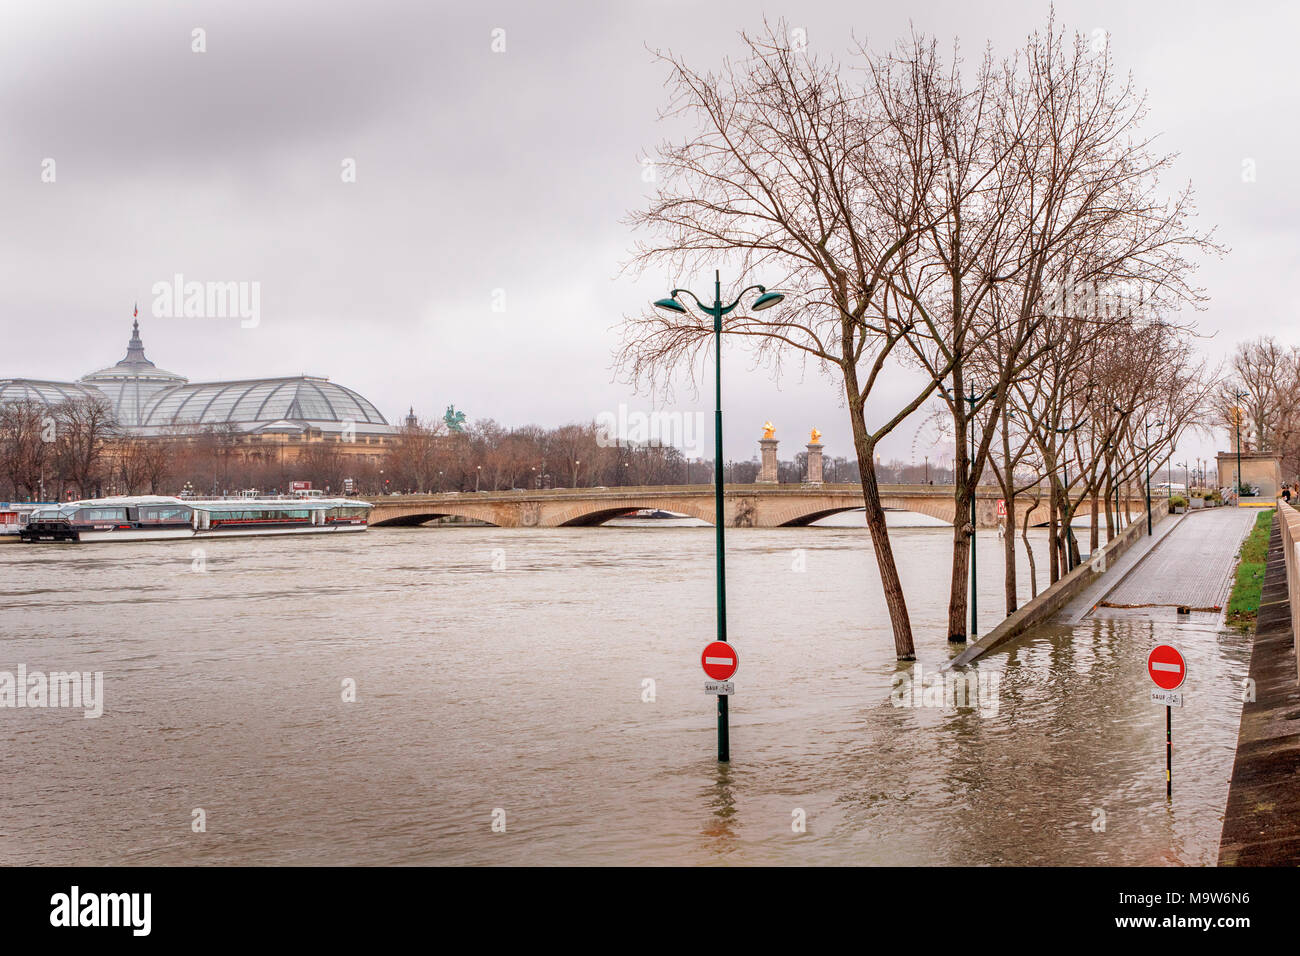 Pont des Invalides submerged in high river Seine during the Paris flood of January 2018, with flooded embankment, submerged trees, signs and lamp post - Stock Image